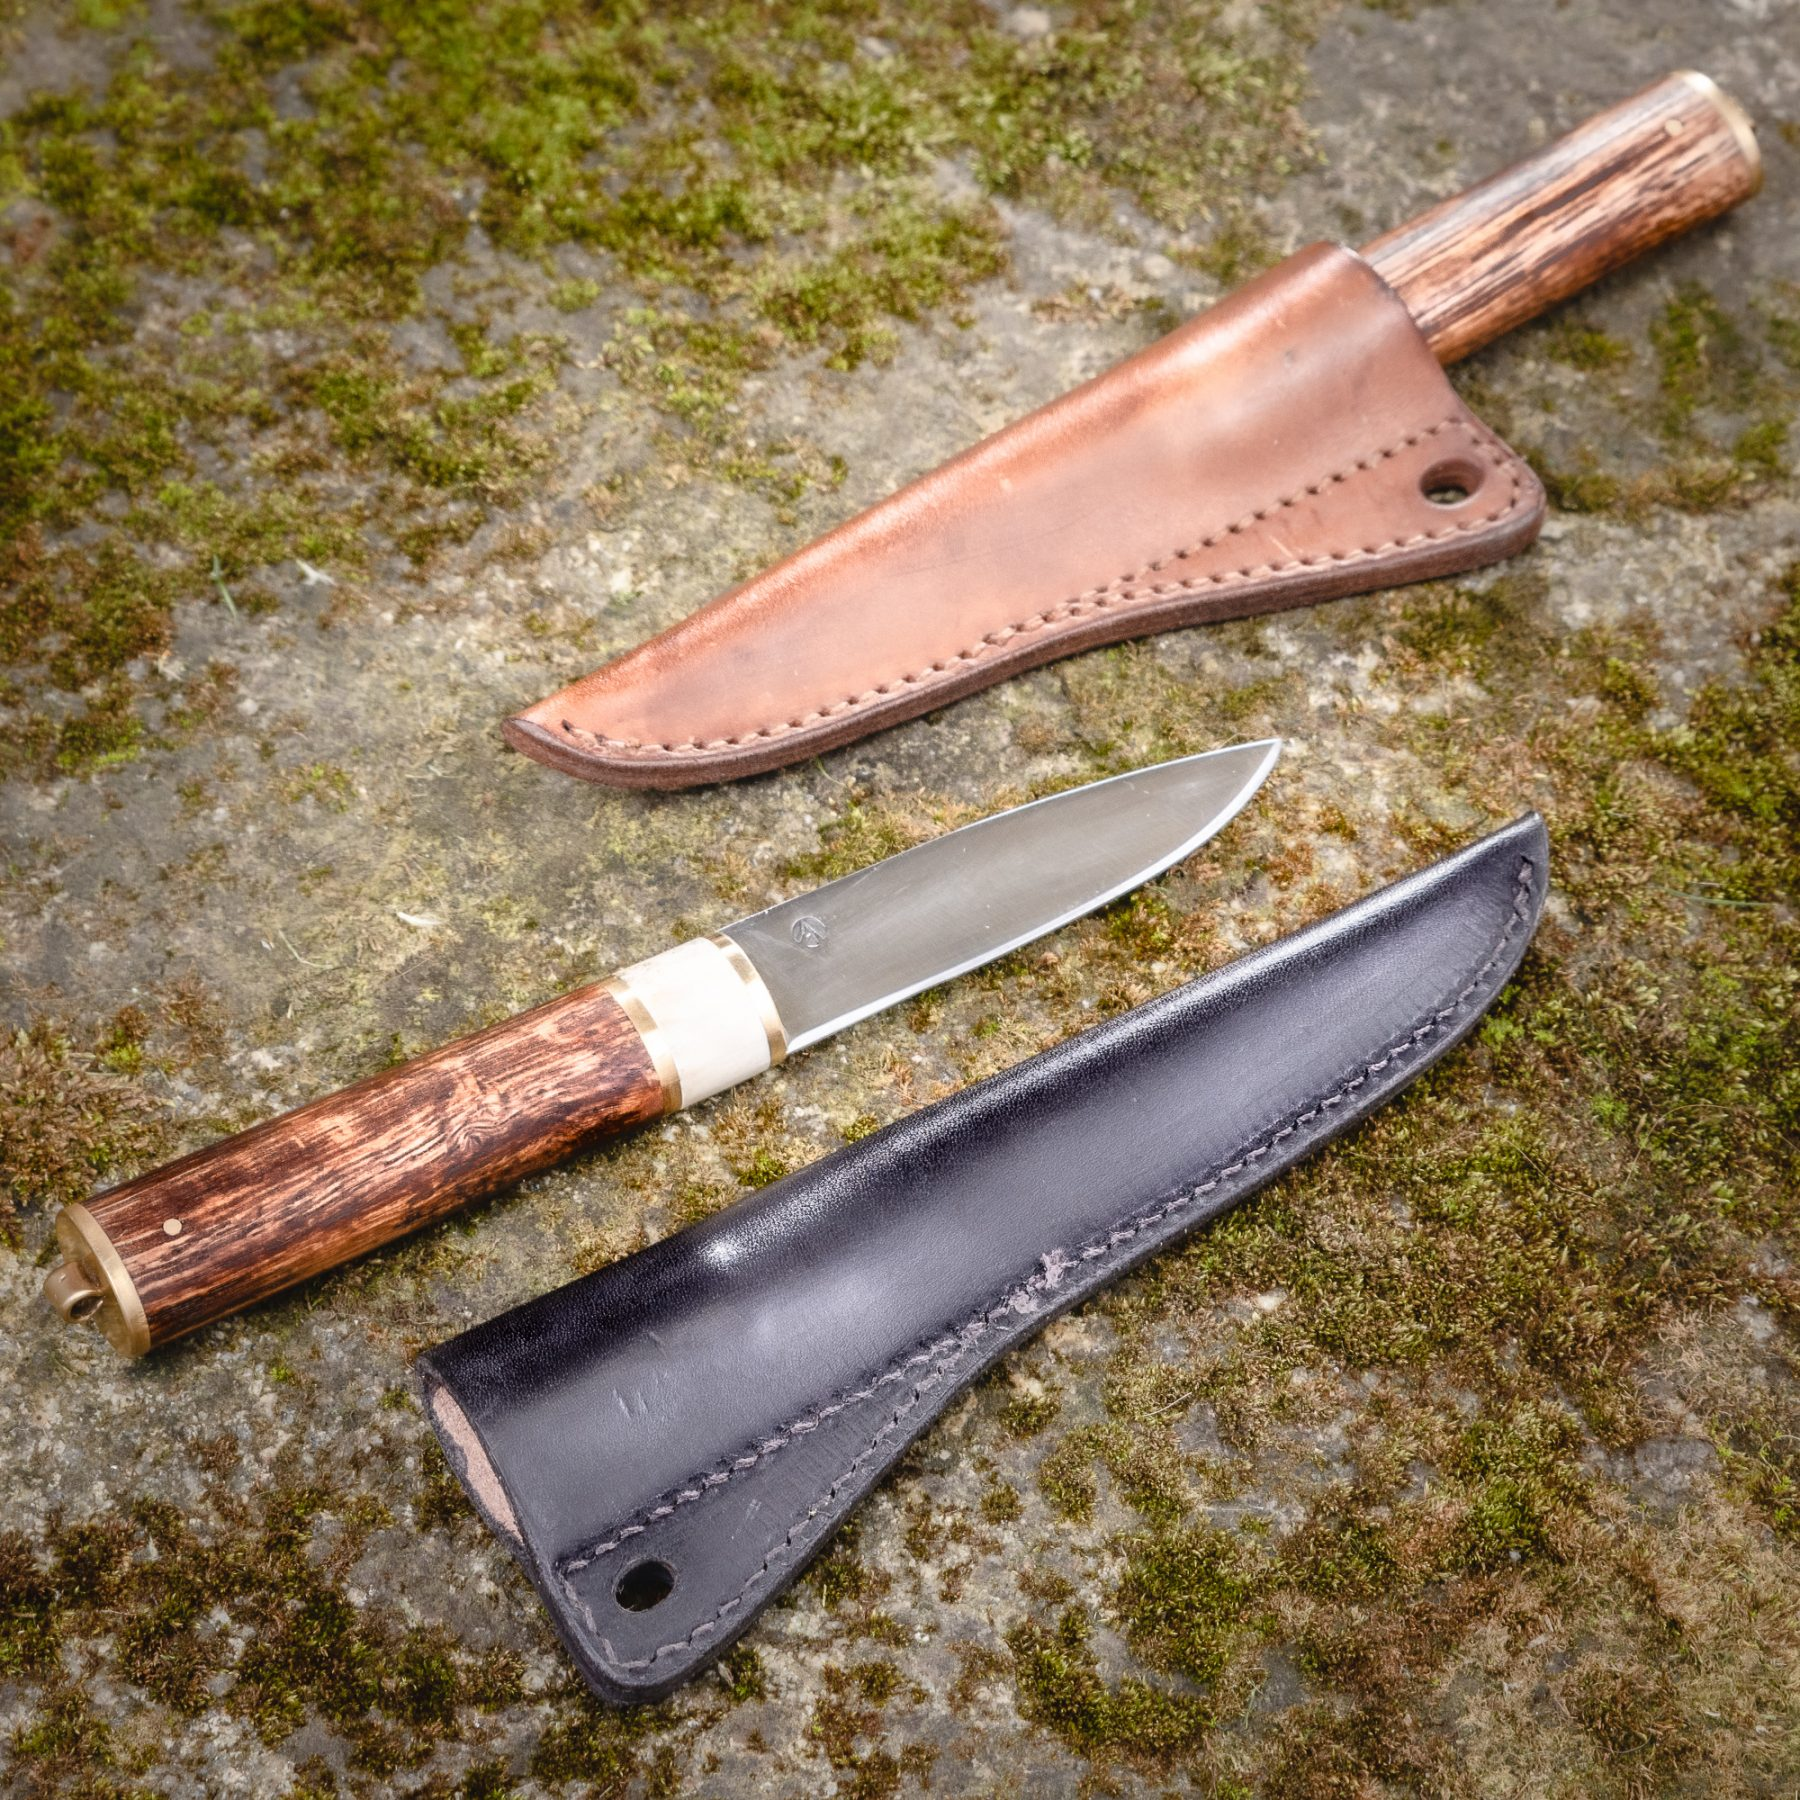 Nordic knife with combined handle